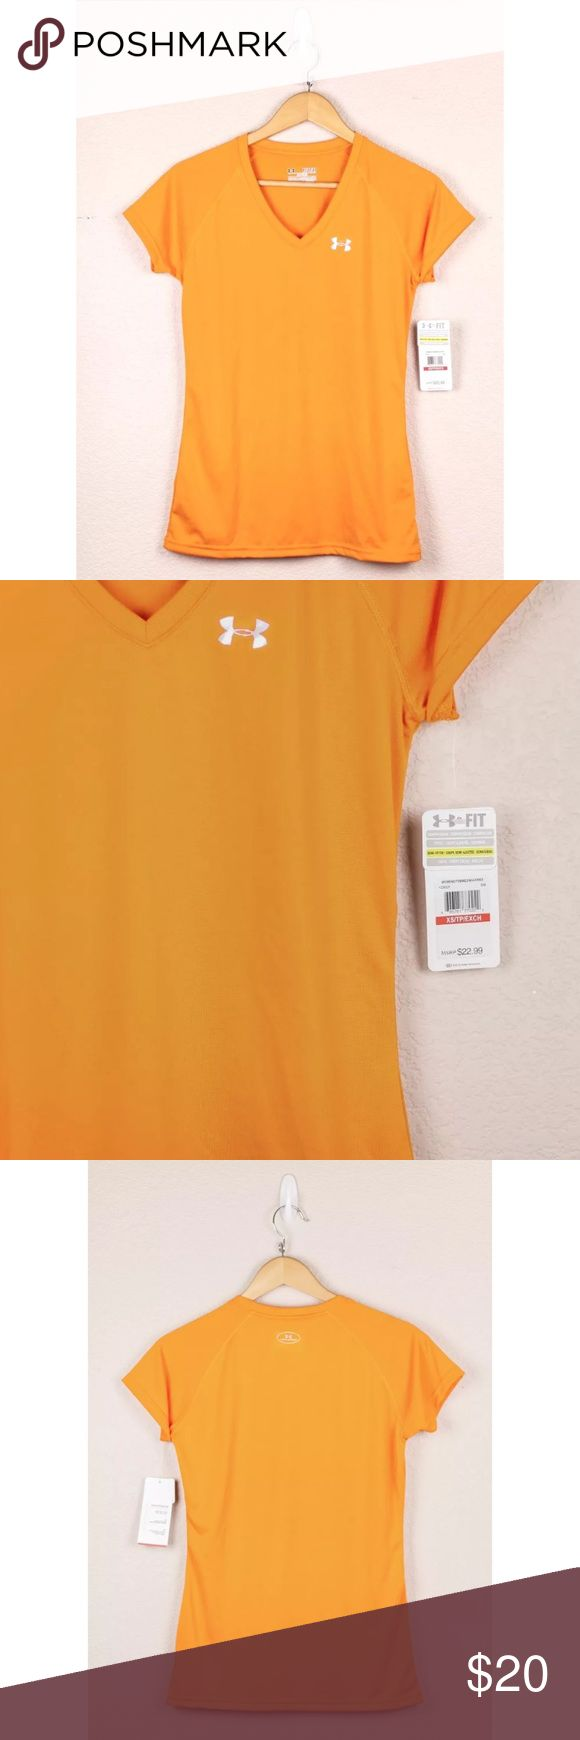 UNDER ARMOUR Orange Semi Fitted VNeck Short Sleeve UNDER ARMOUR Orange Women's Semi Fitted V-Neck Heatgear Short Sleeve T Shirt XS Under Armour Tops Tees - Short Sleeve